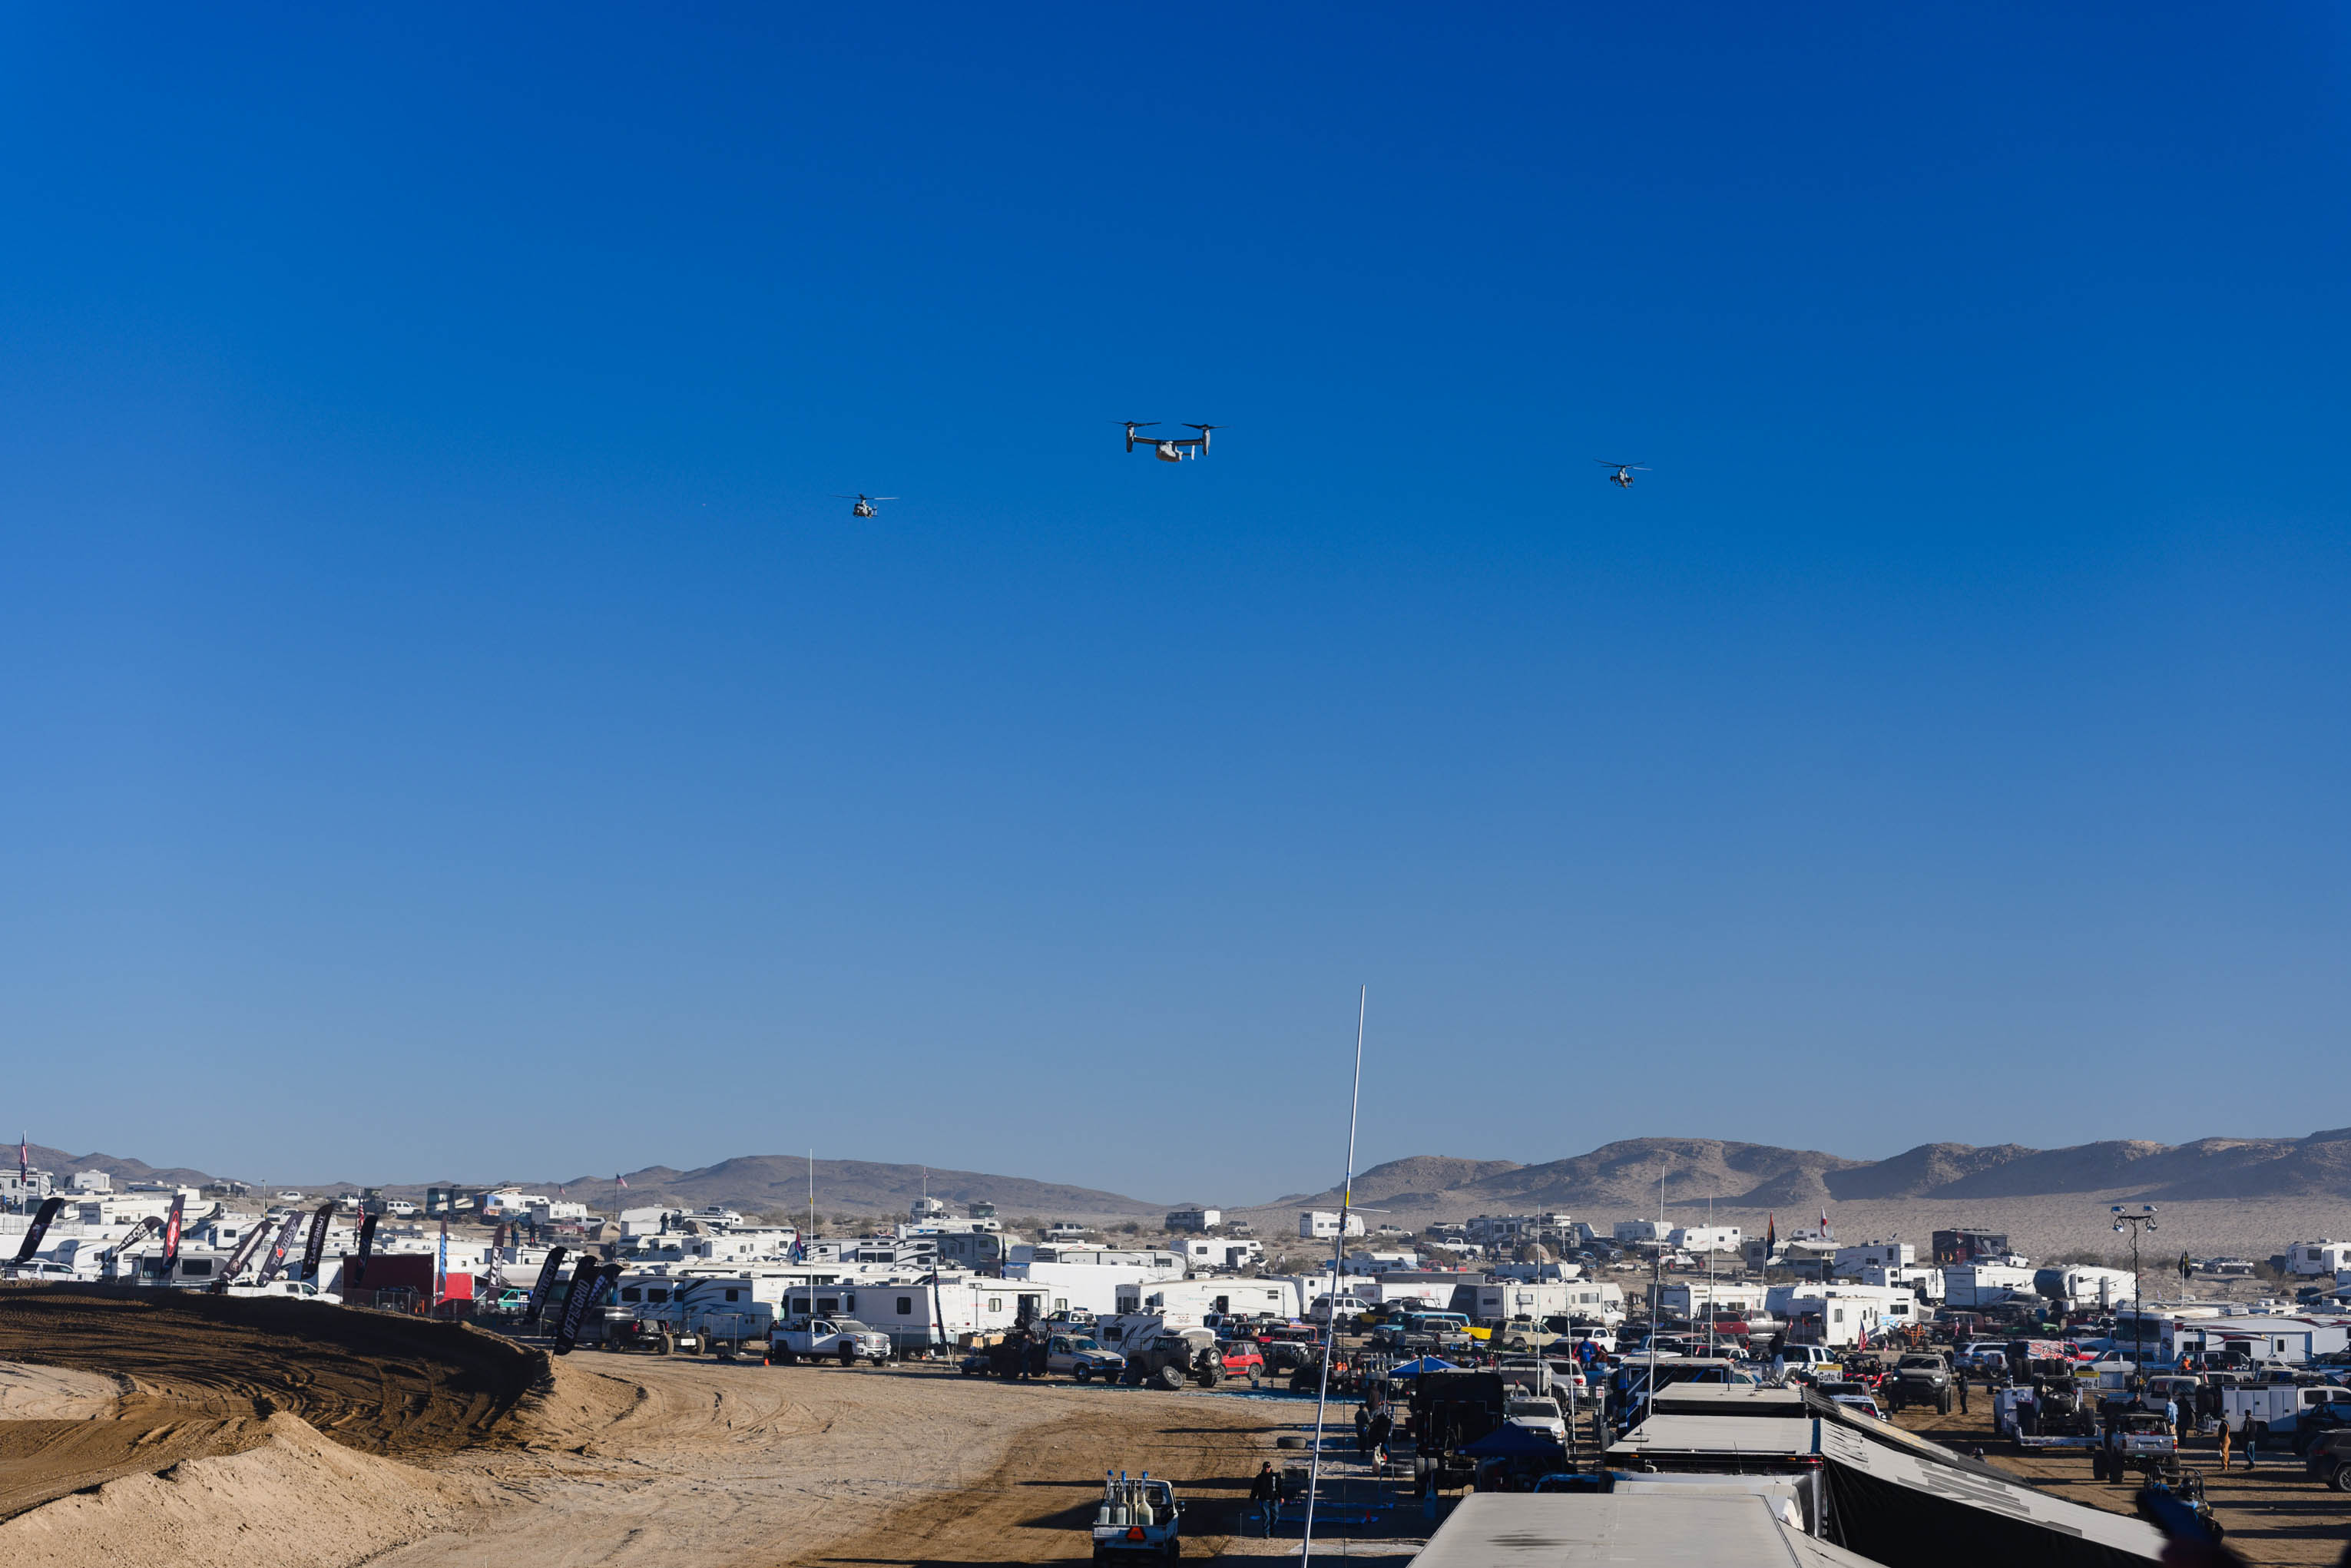 Drones hovering over King of the Hammers event